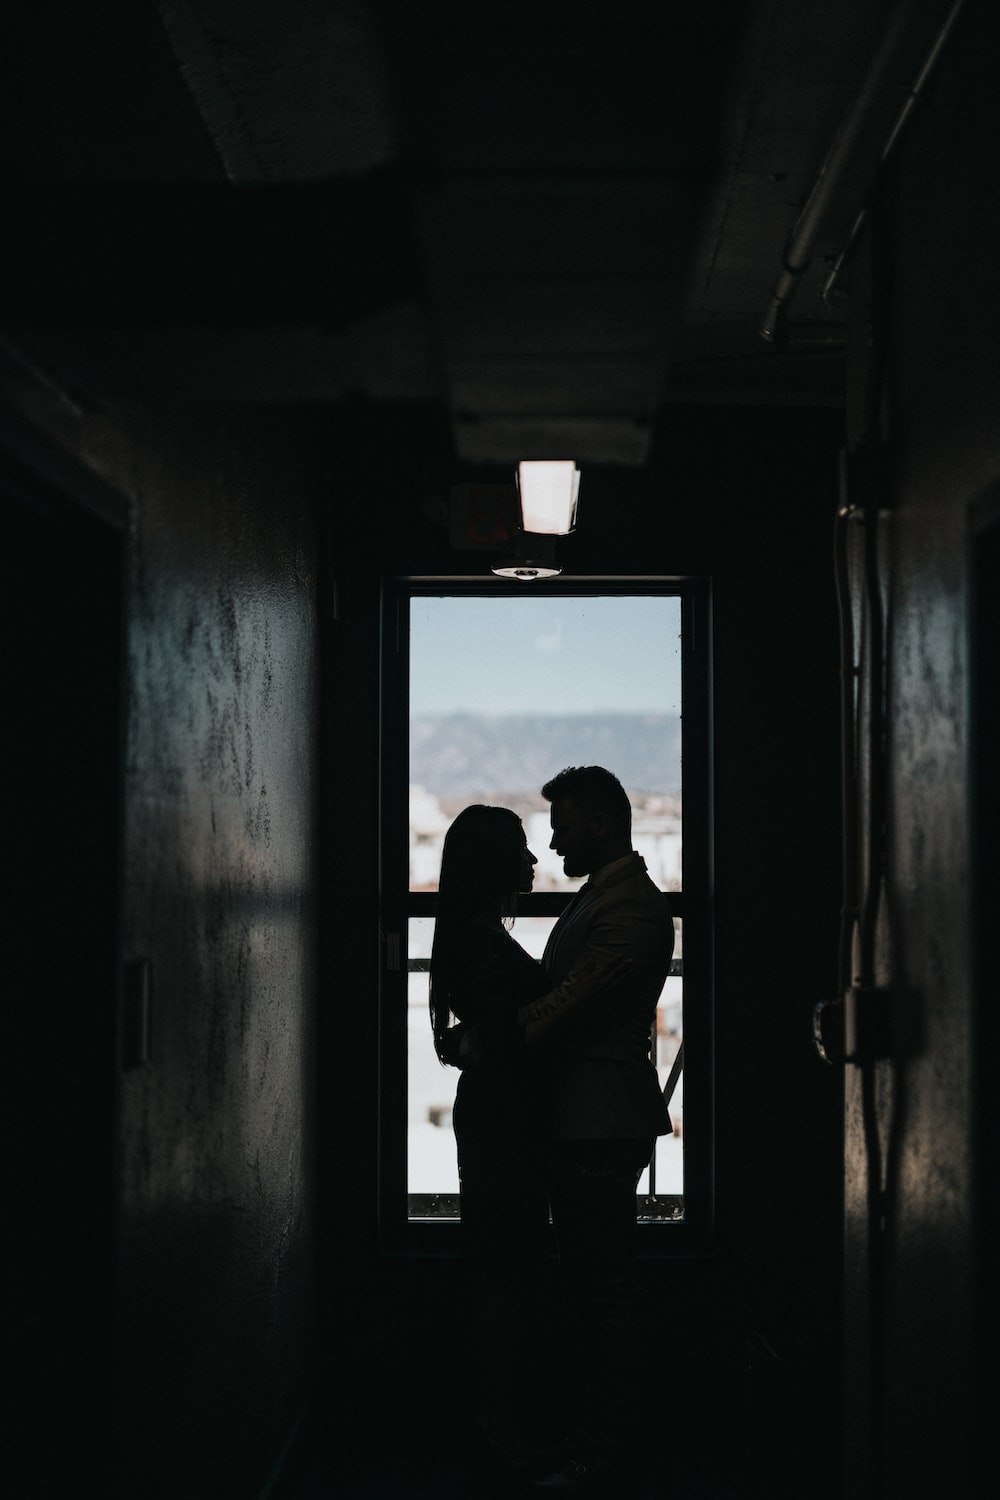 silhouette of couple inside dark room